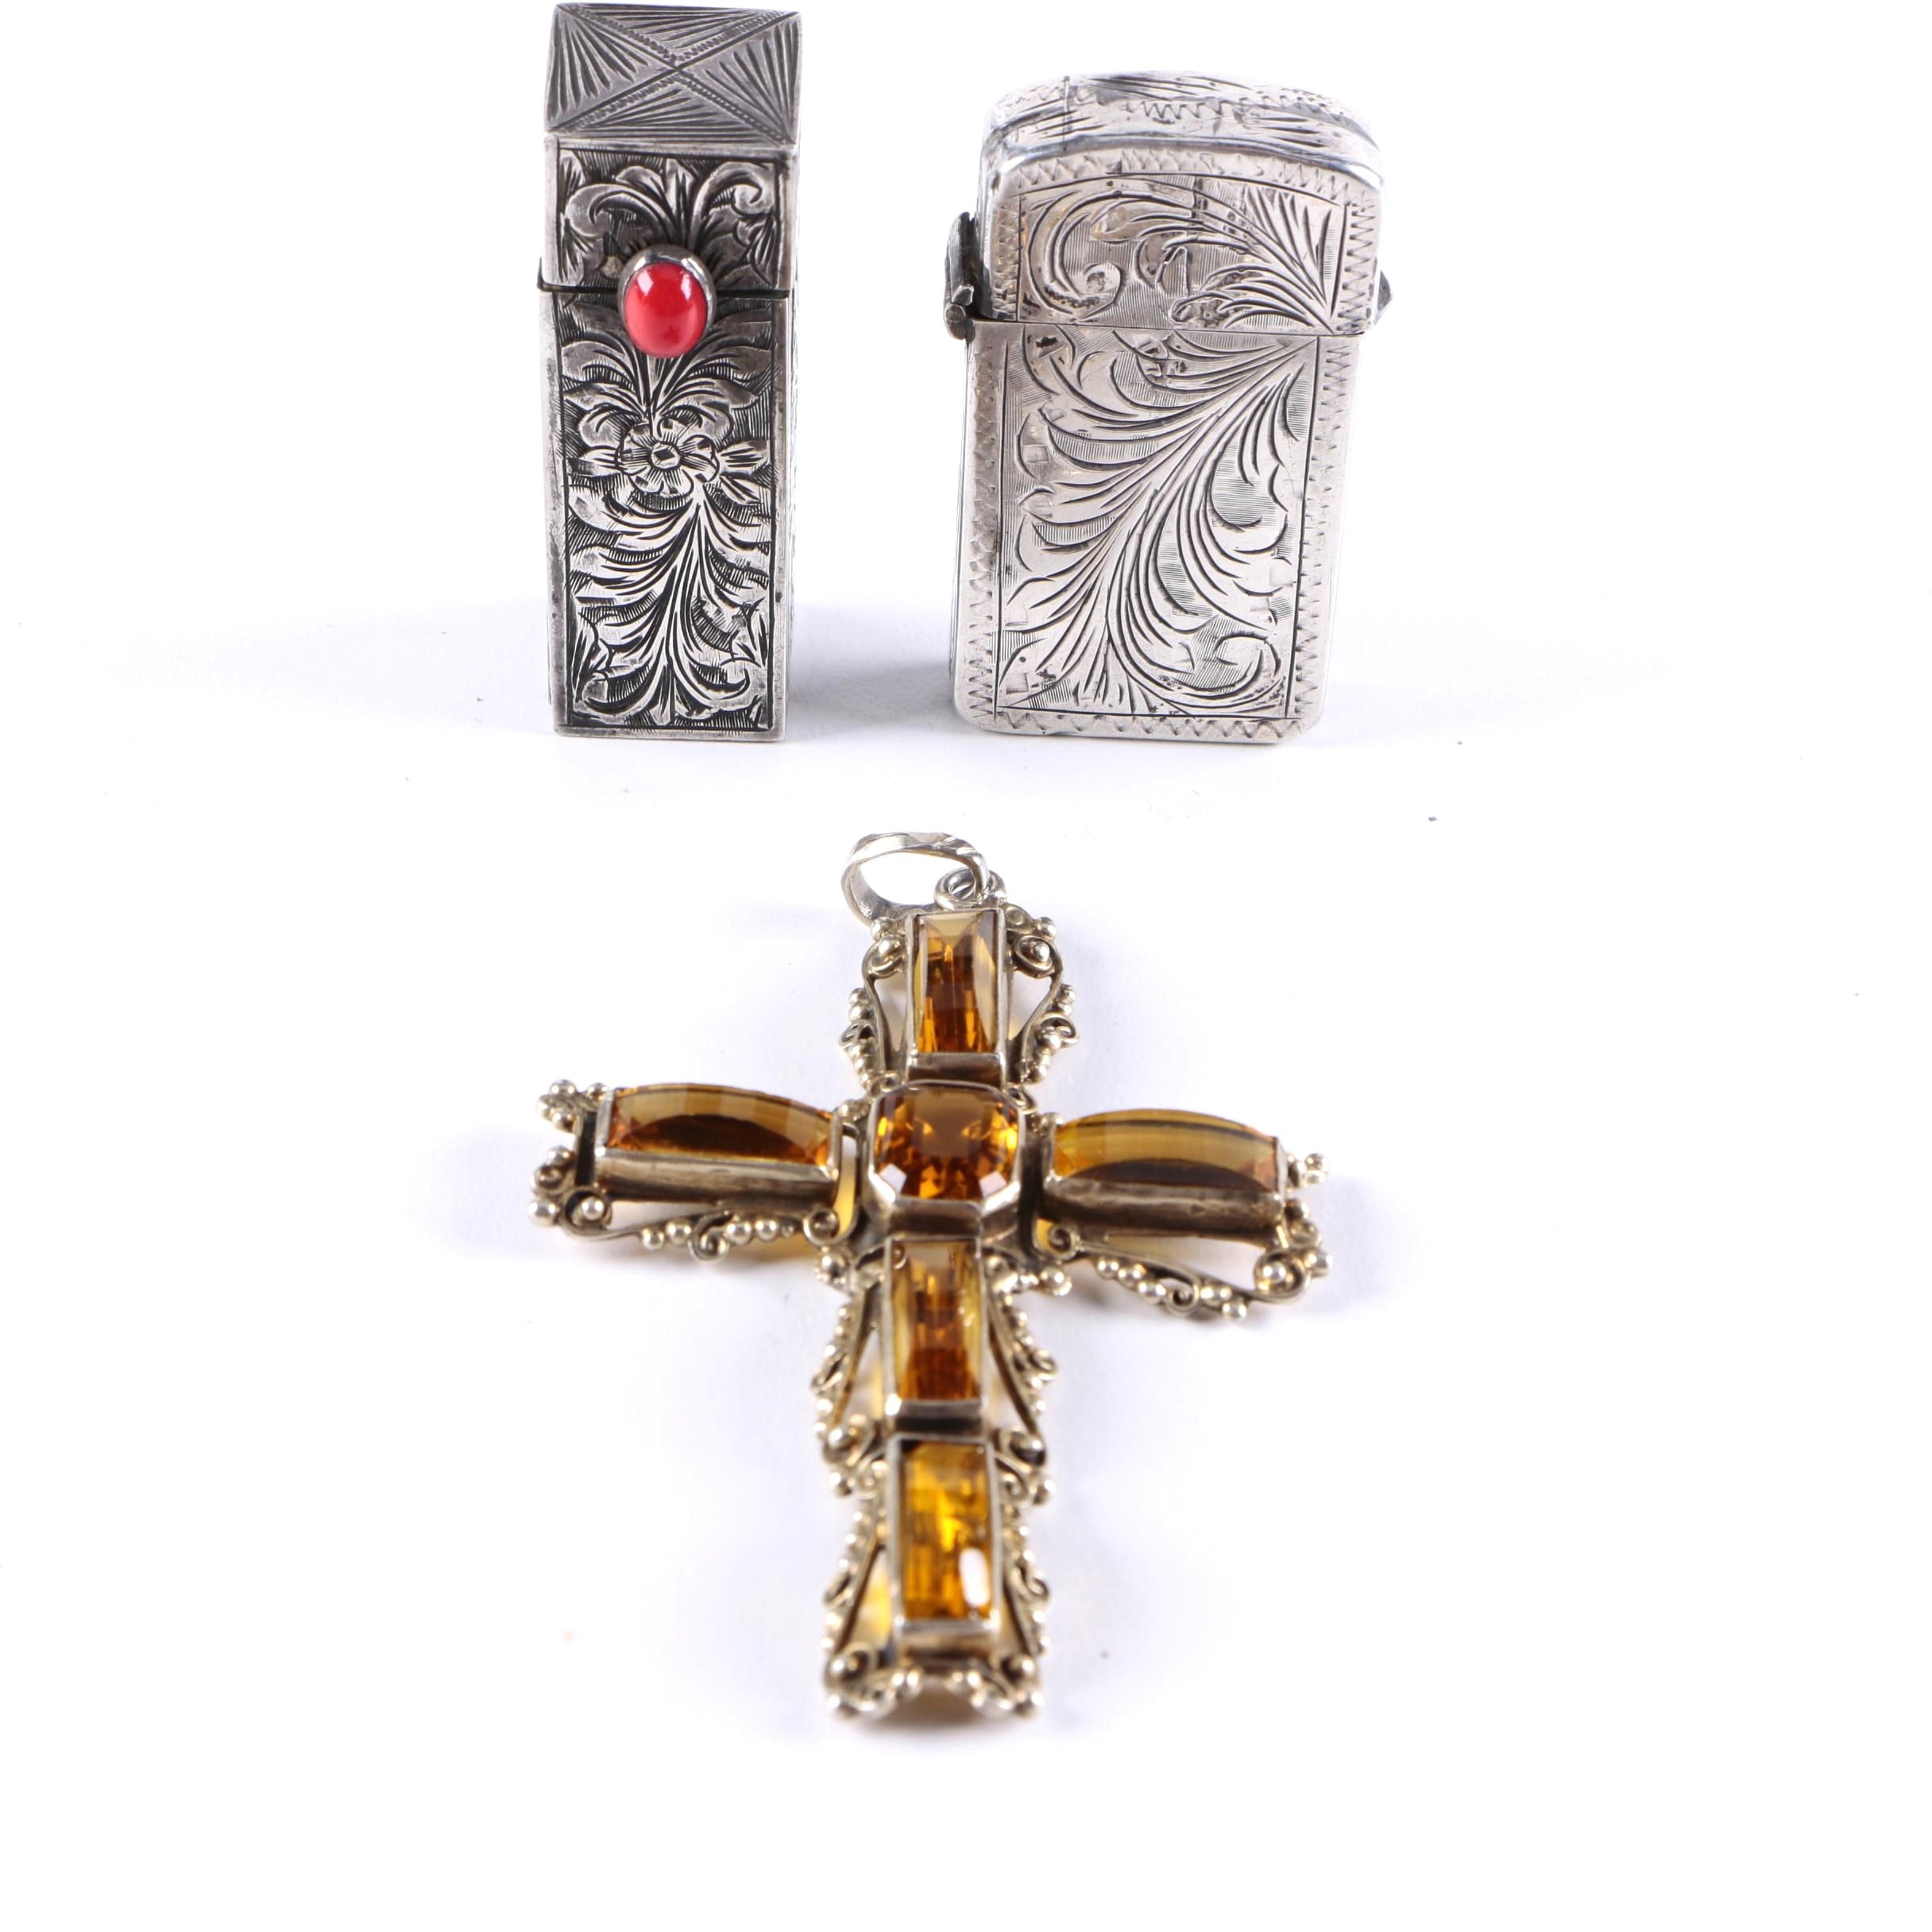 Sterling Silver Accessories Including a Cross Pendant